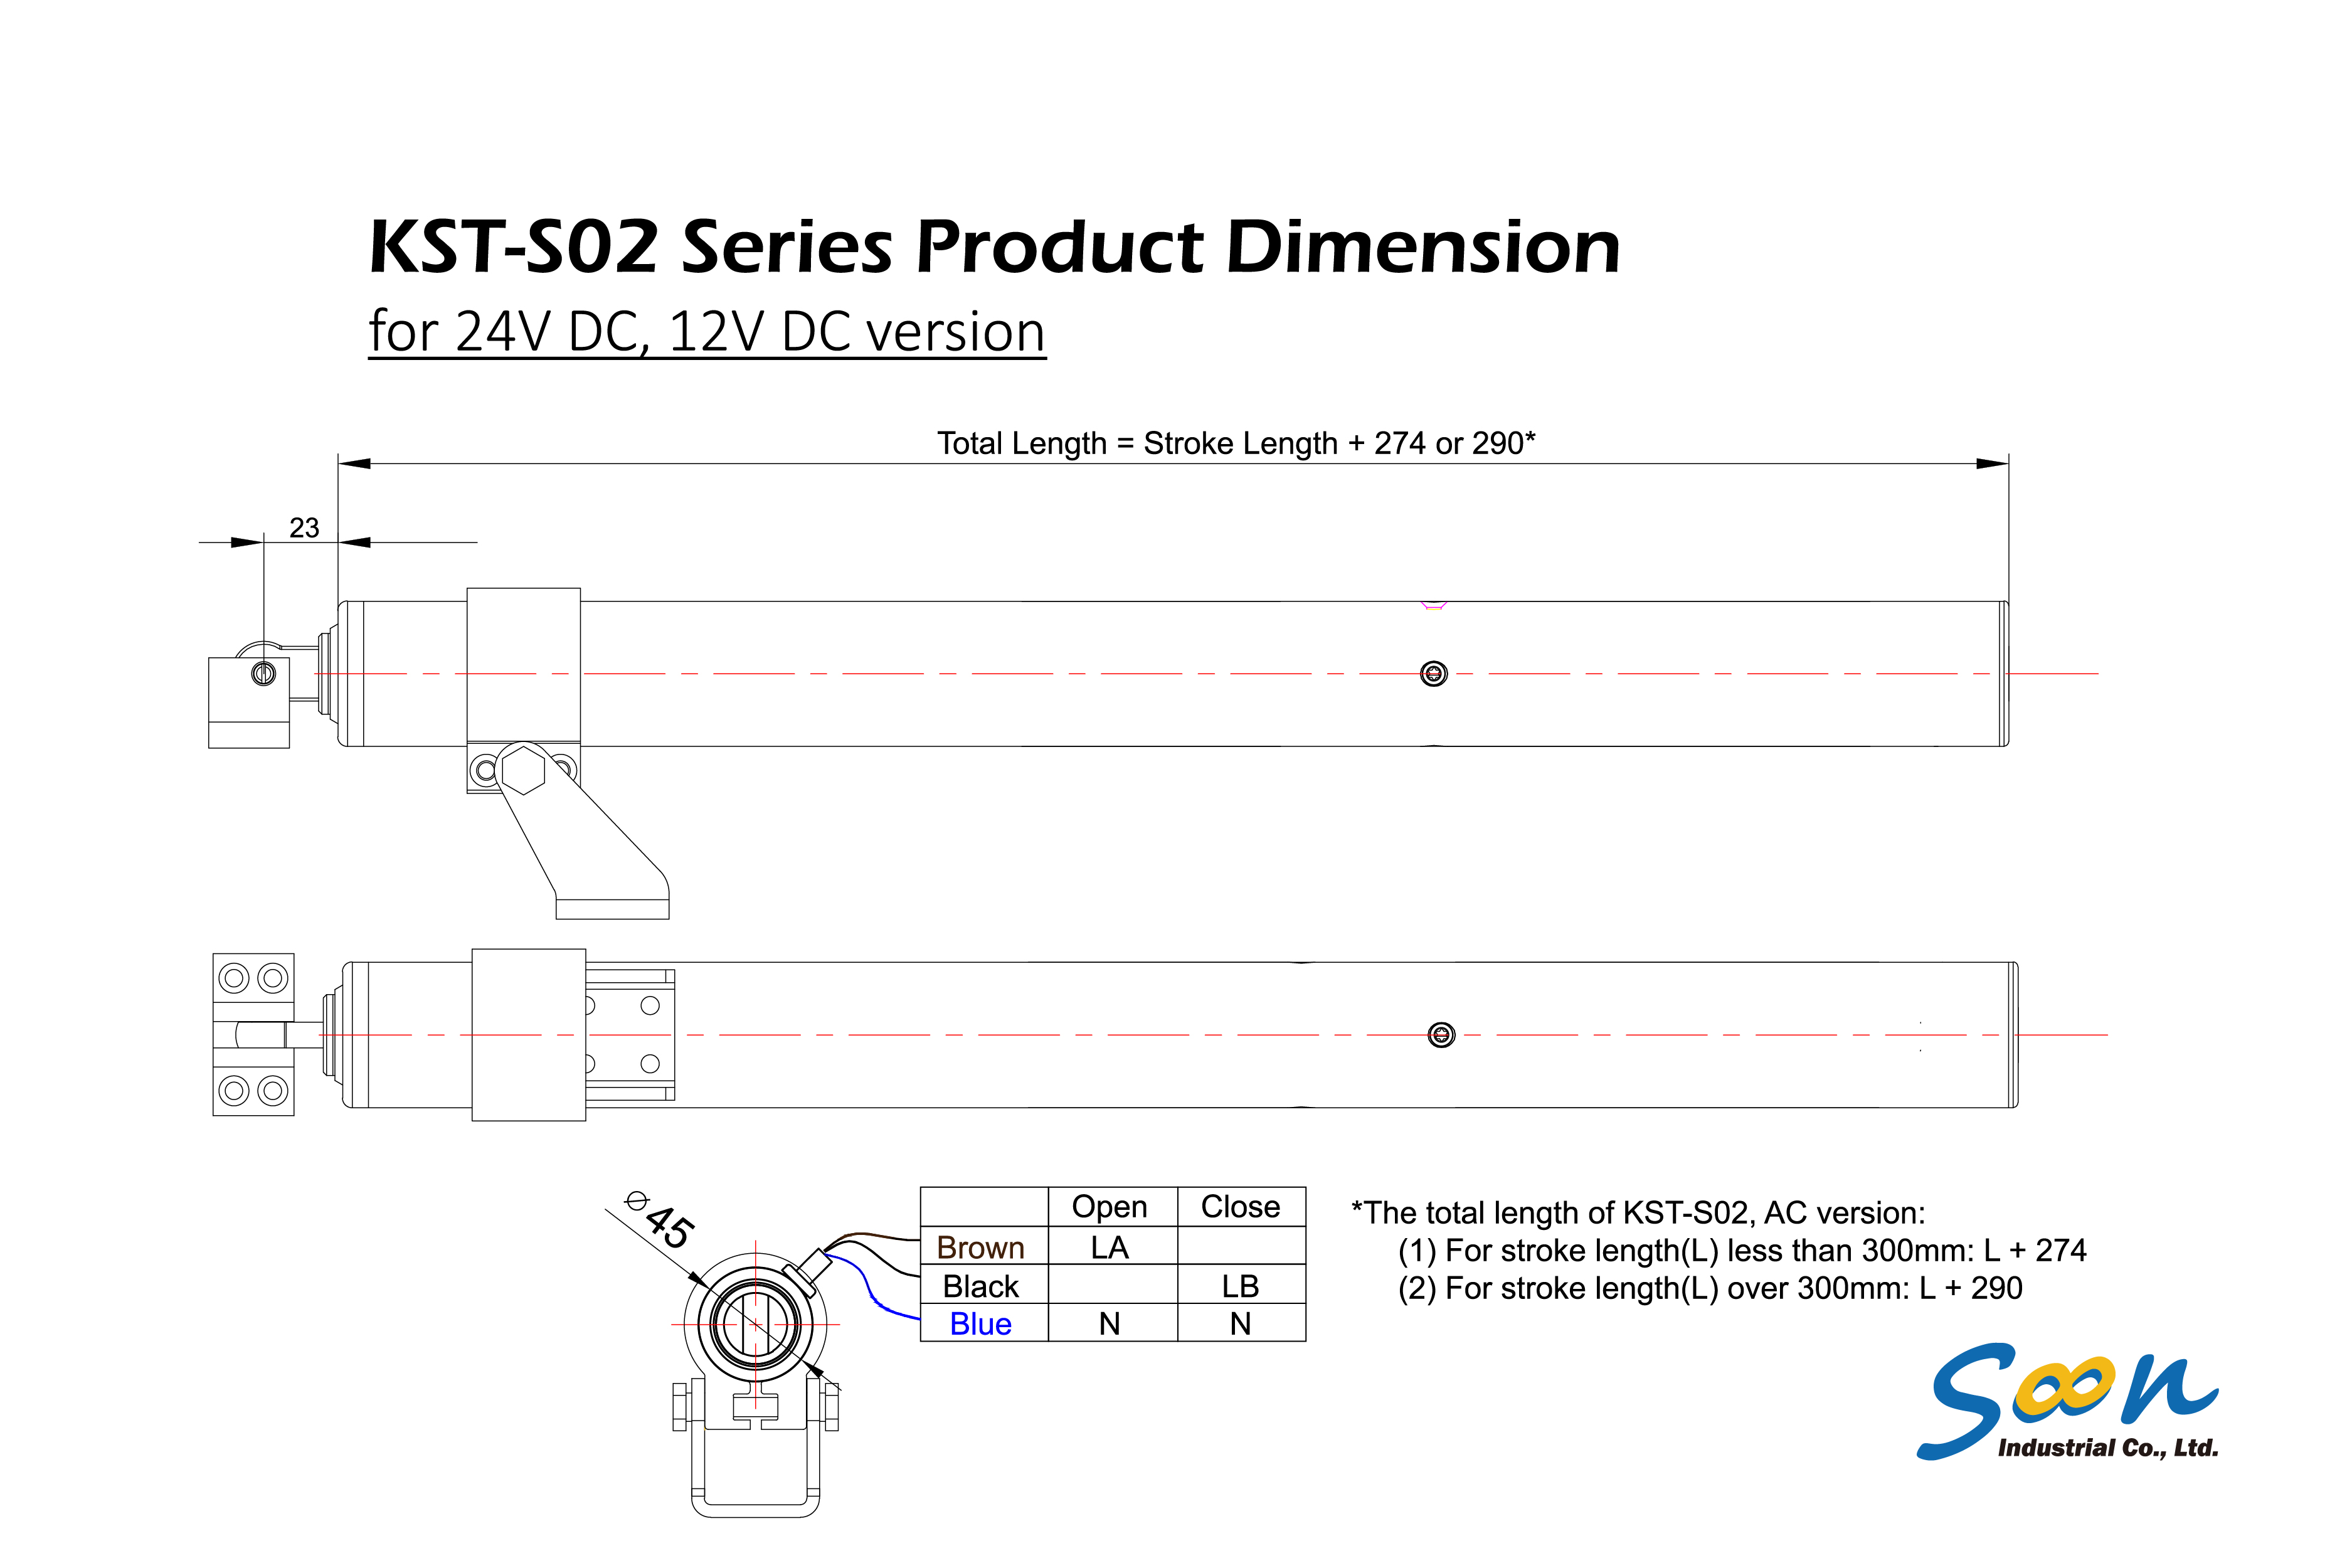 KST-S02 spindle actuator - dimension drawing - DC version